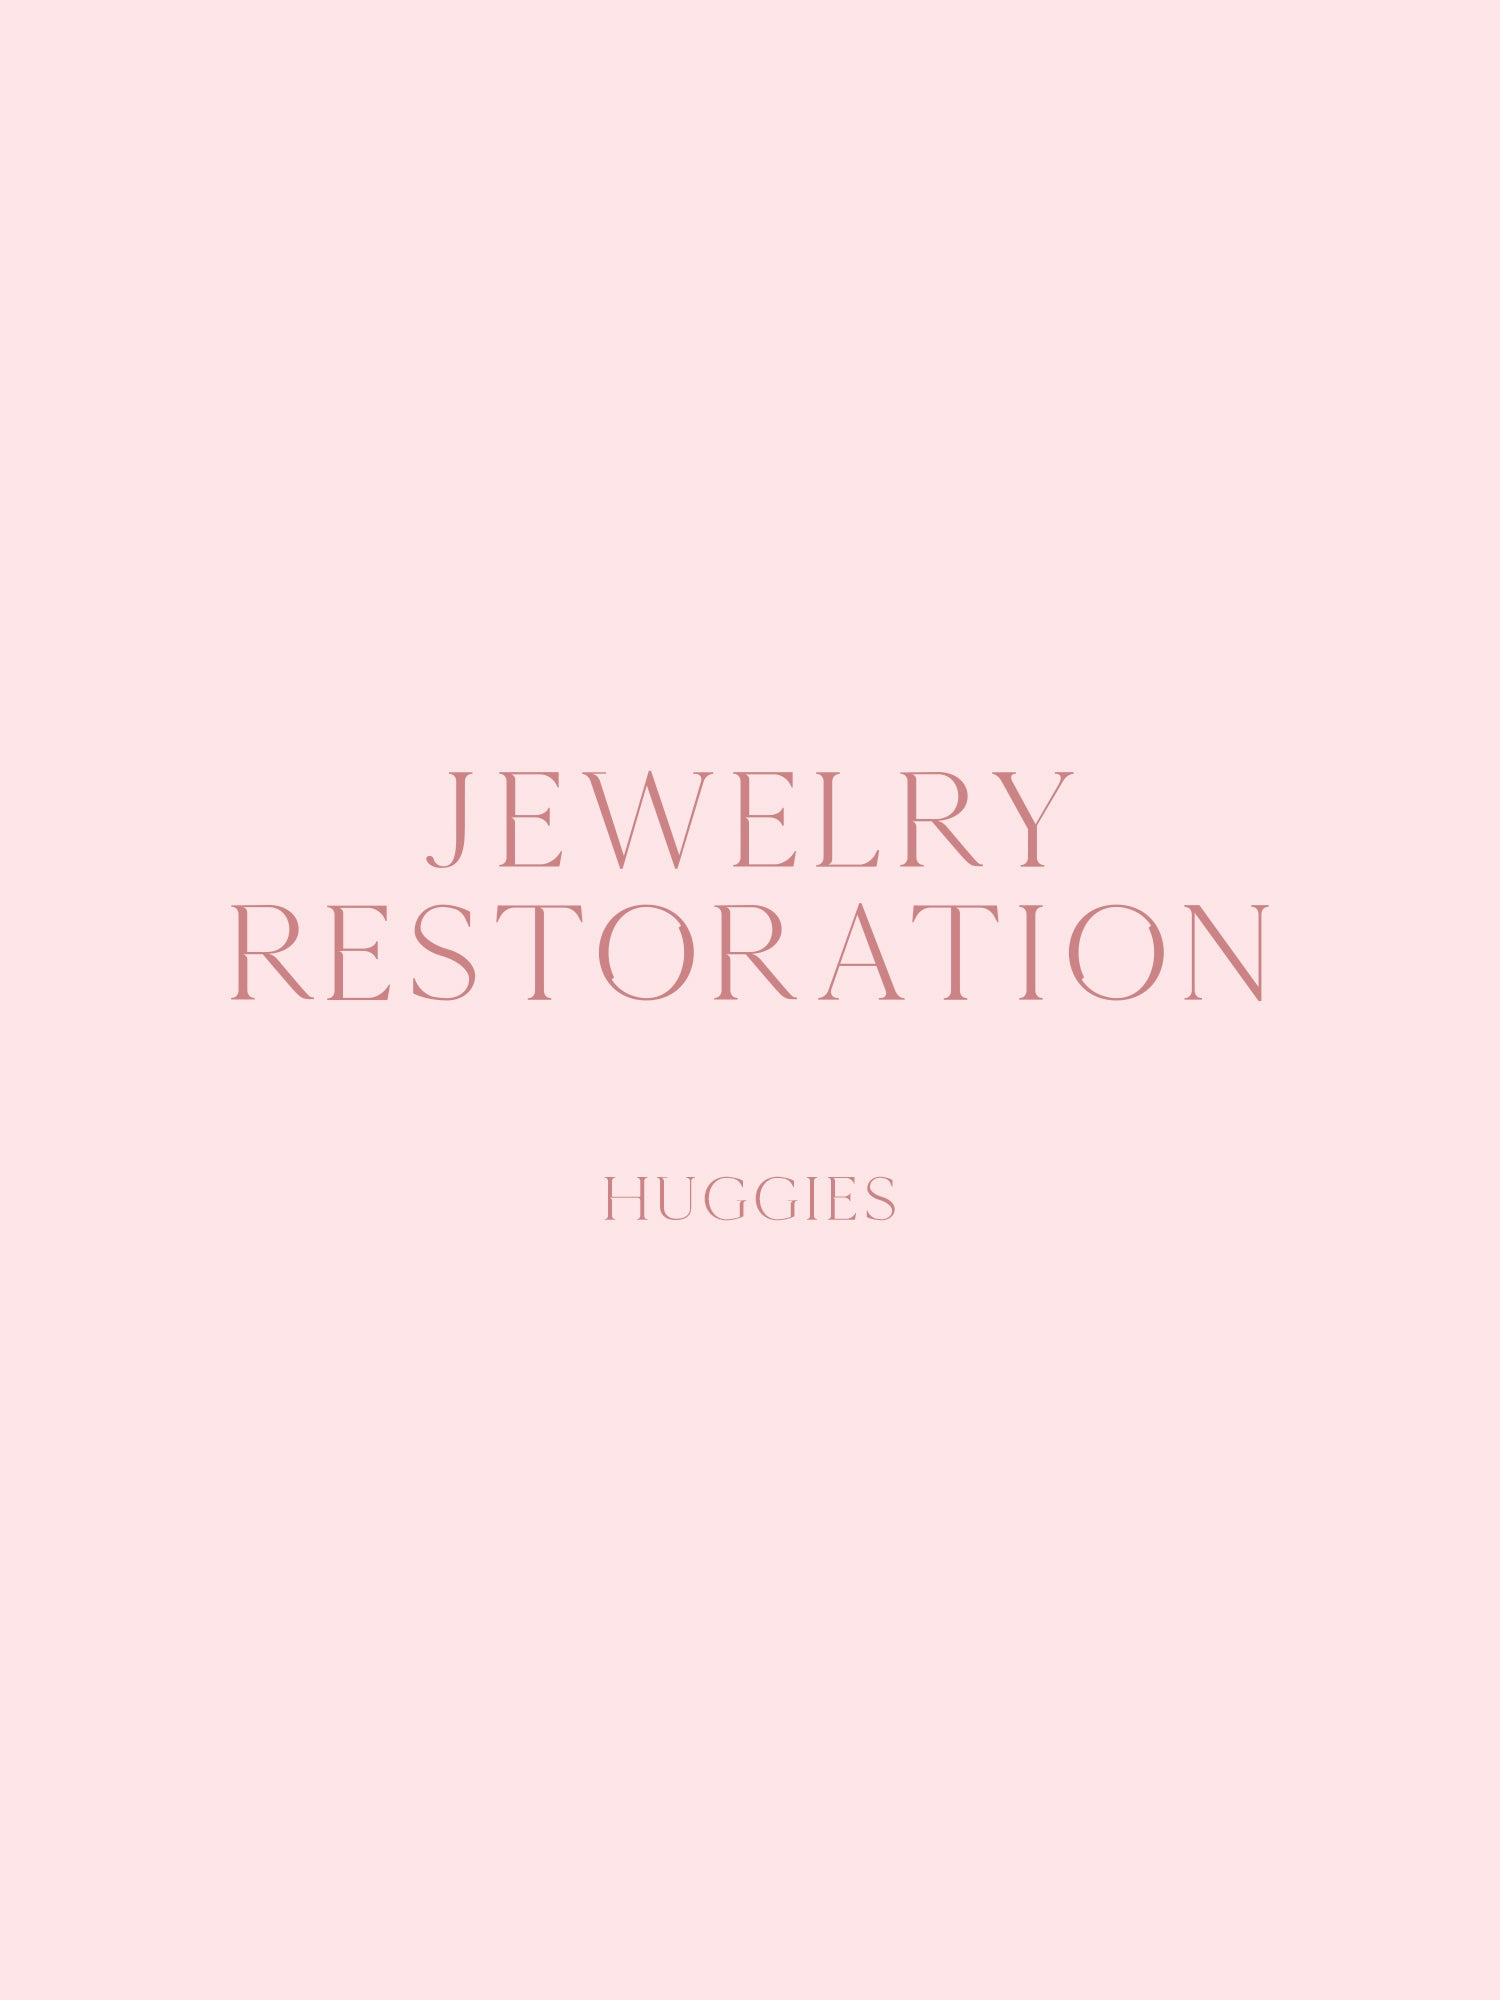 Jewelry Restoration - Huggies